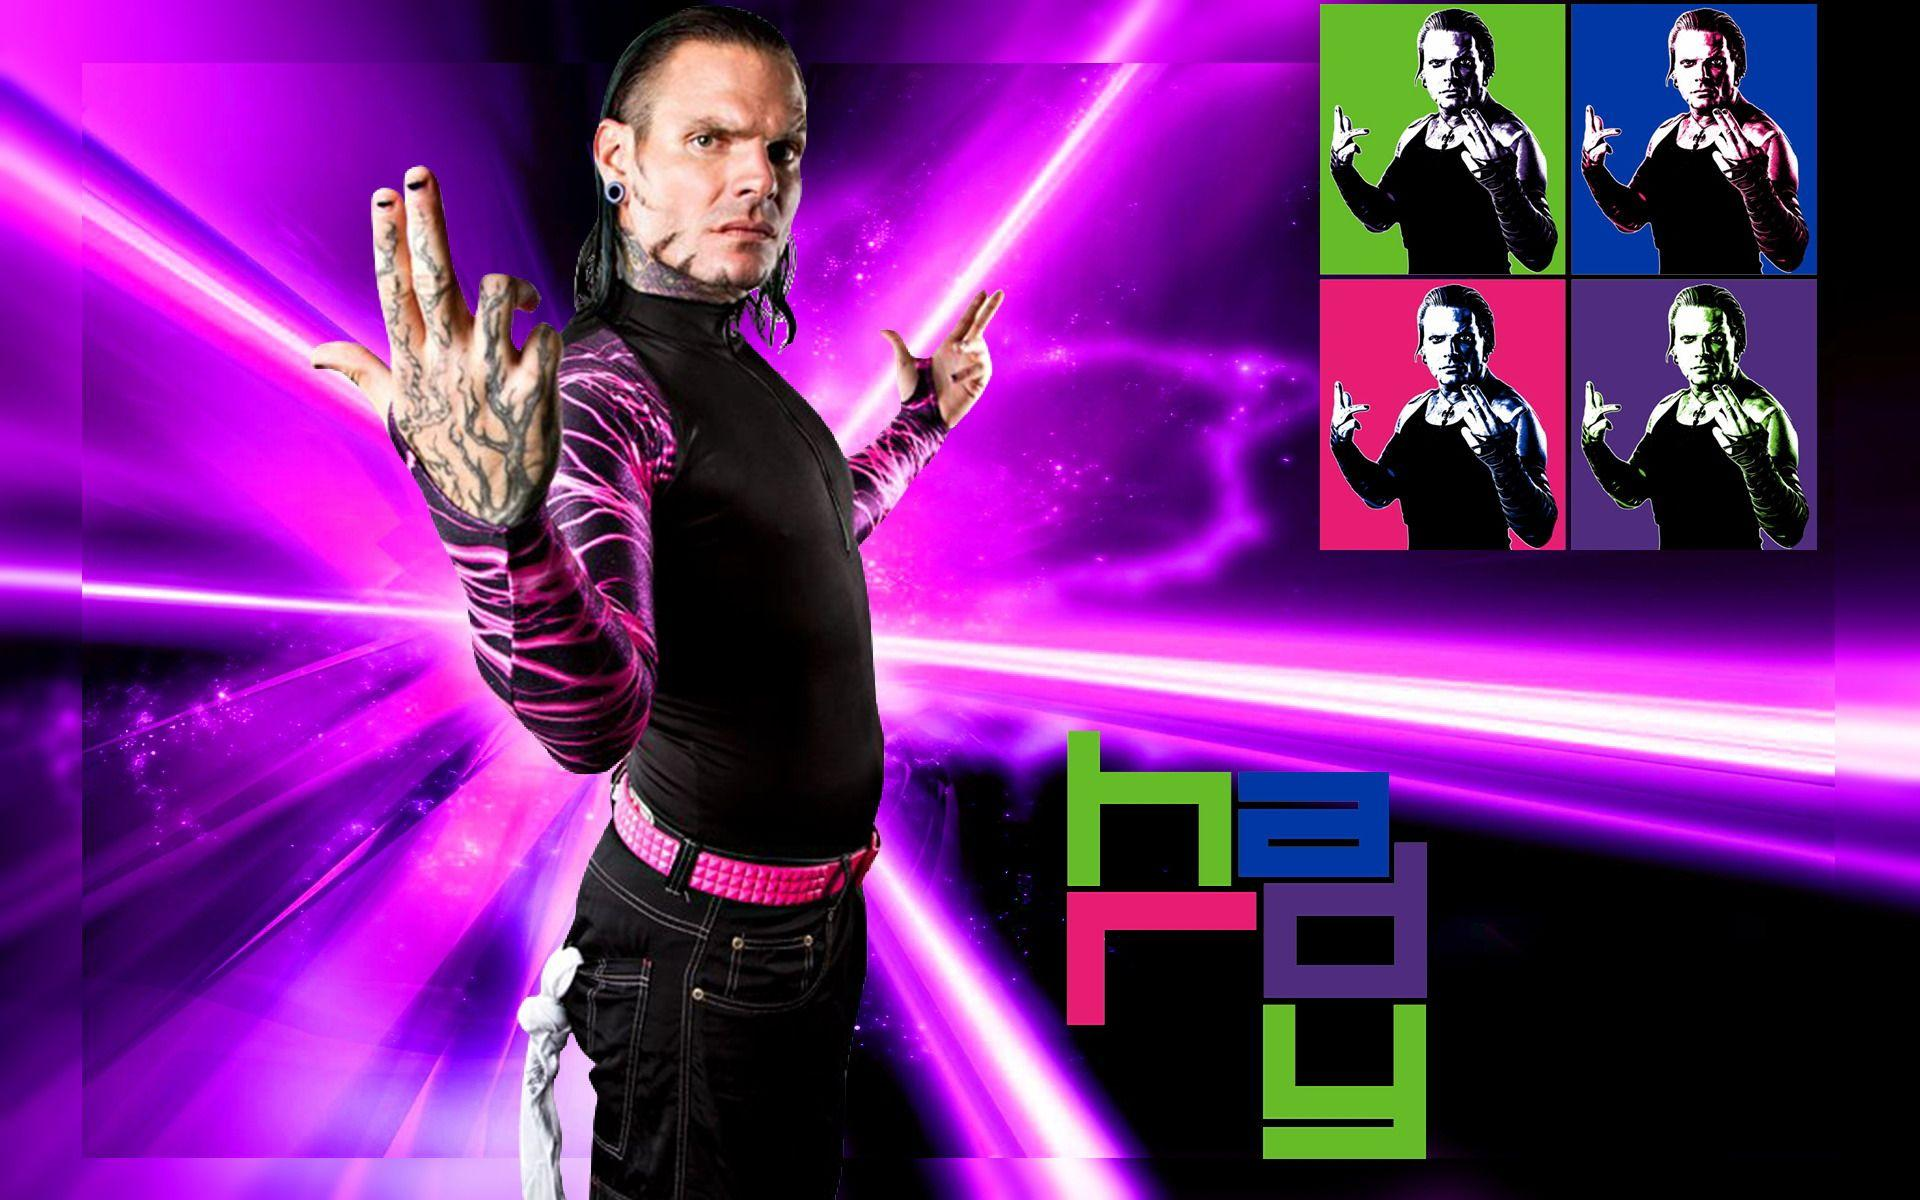 Jeff Hardy Wallpapers and Screensavers